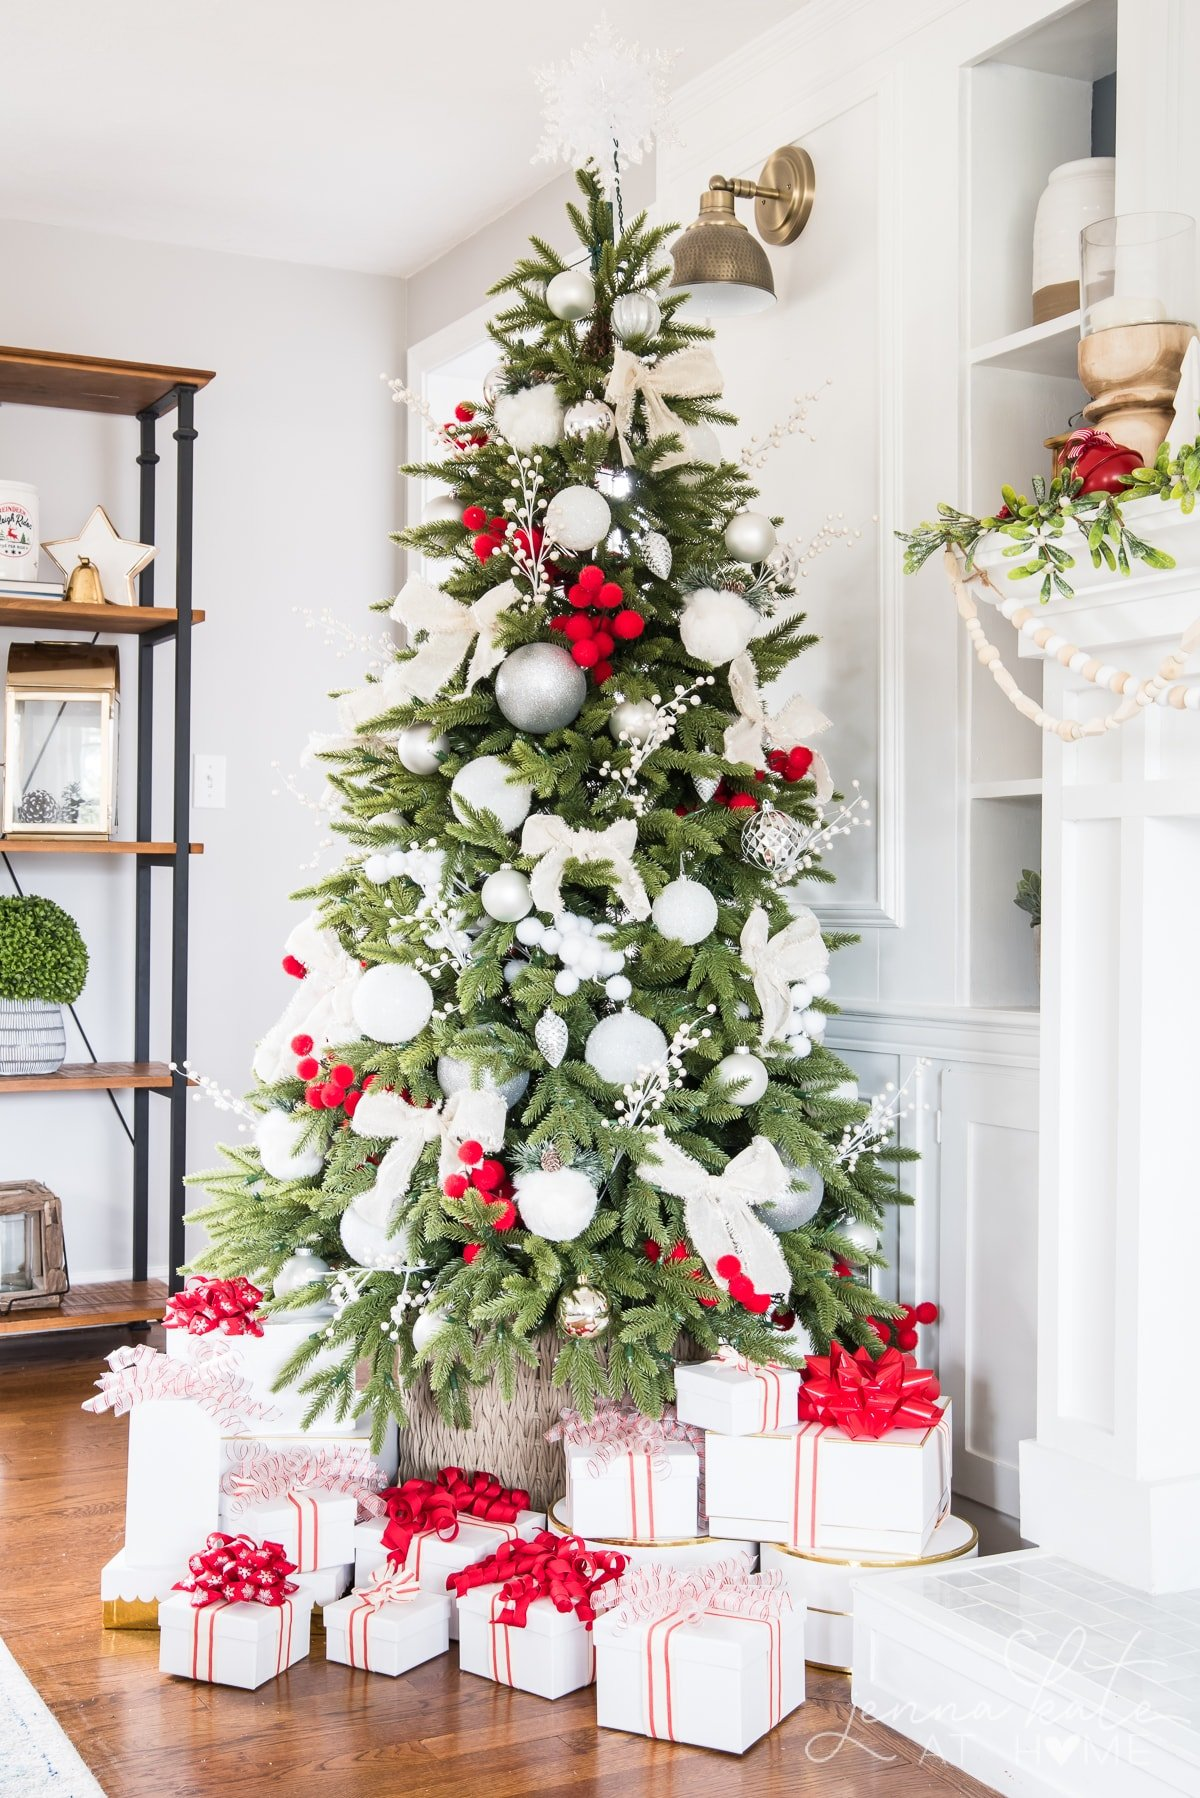 Artificial Christmas tree with red and white decorations